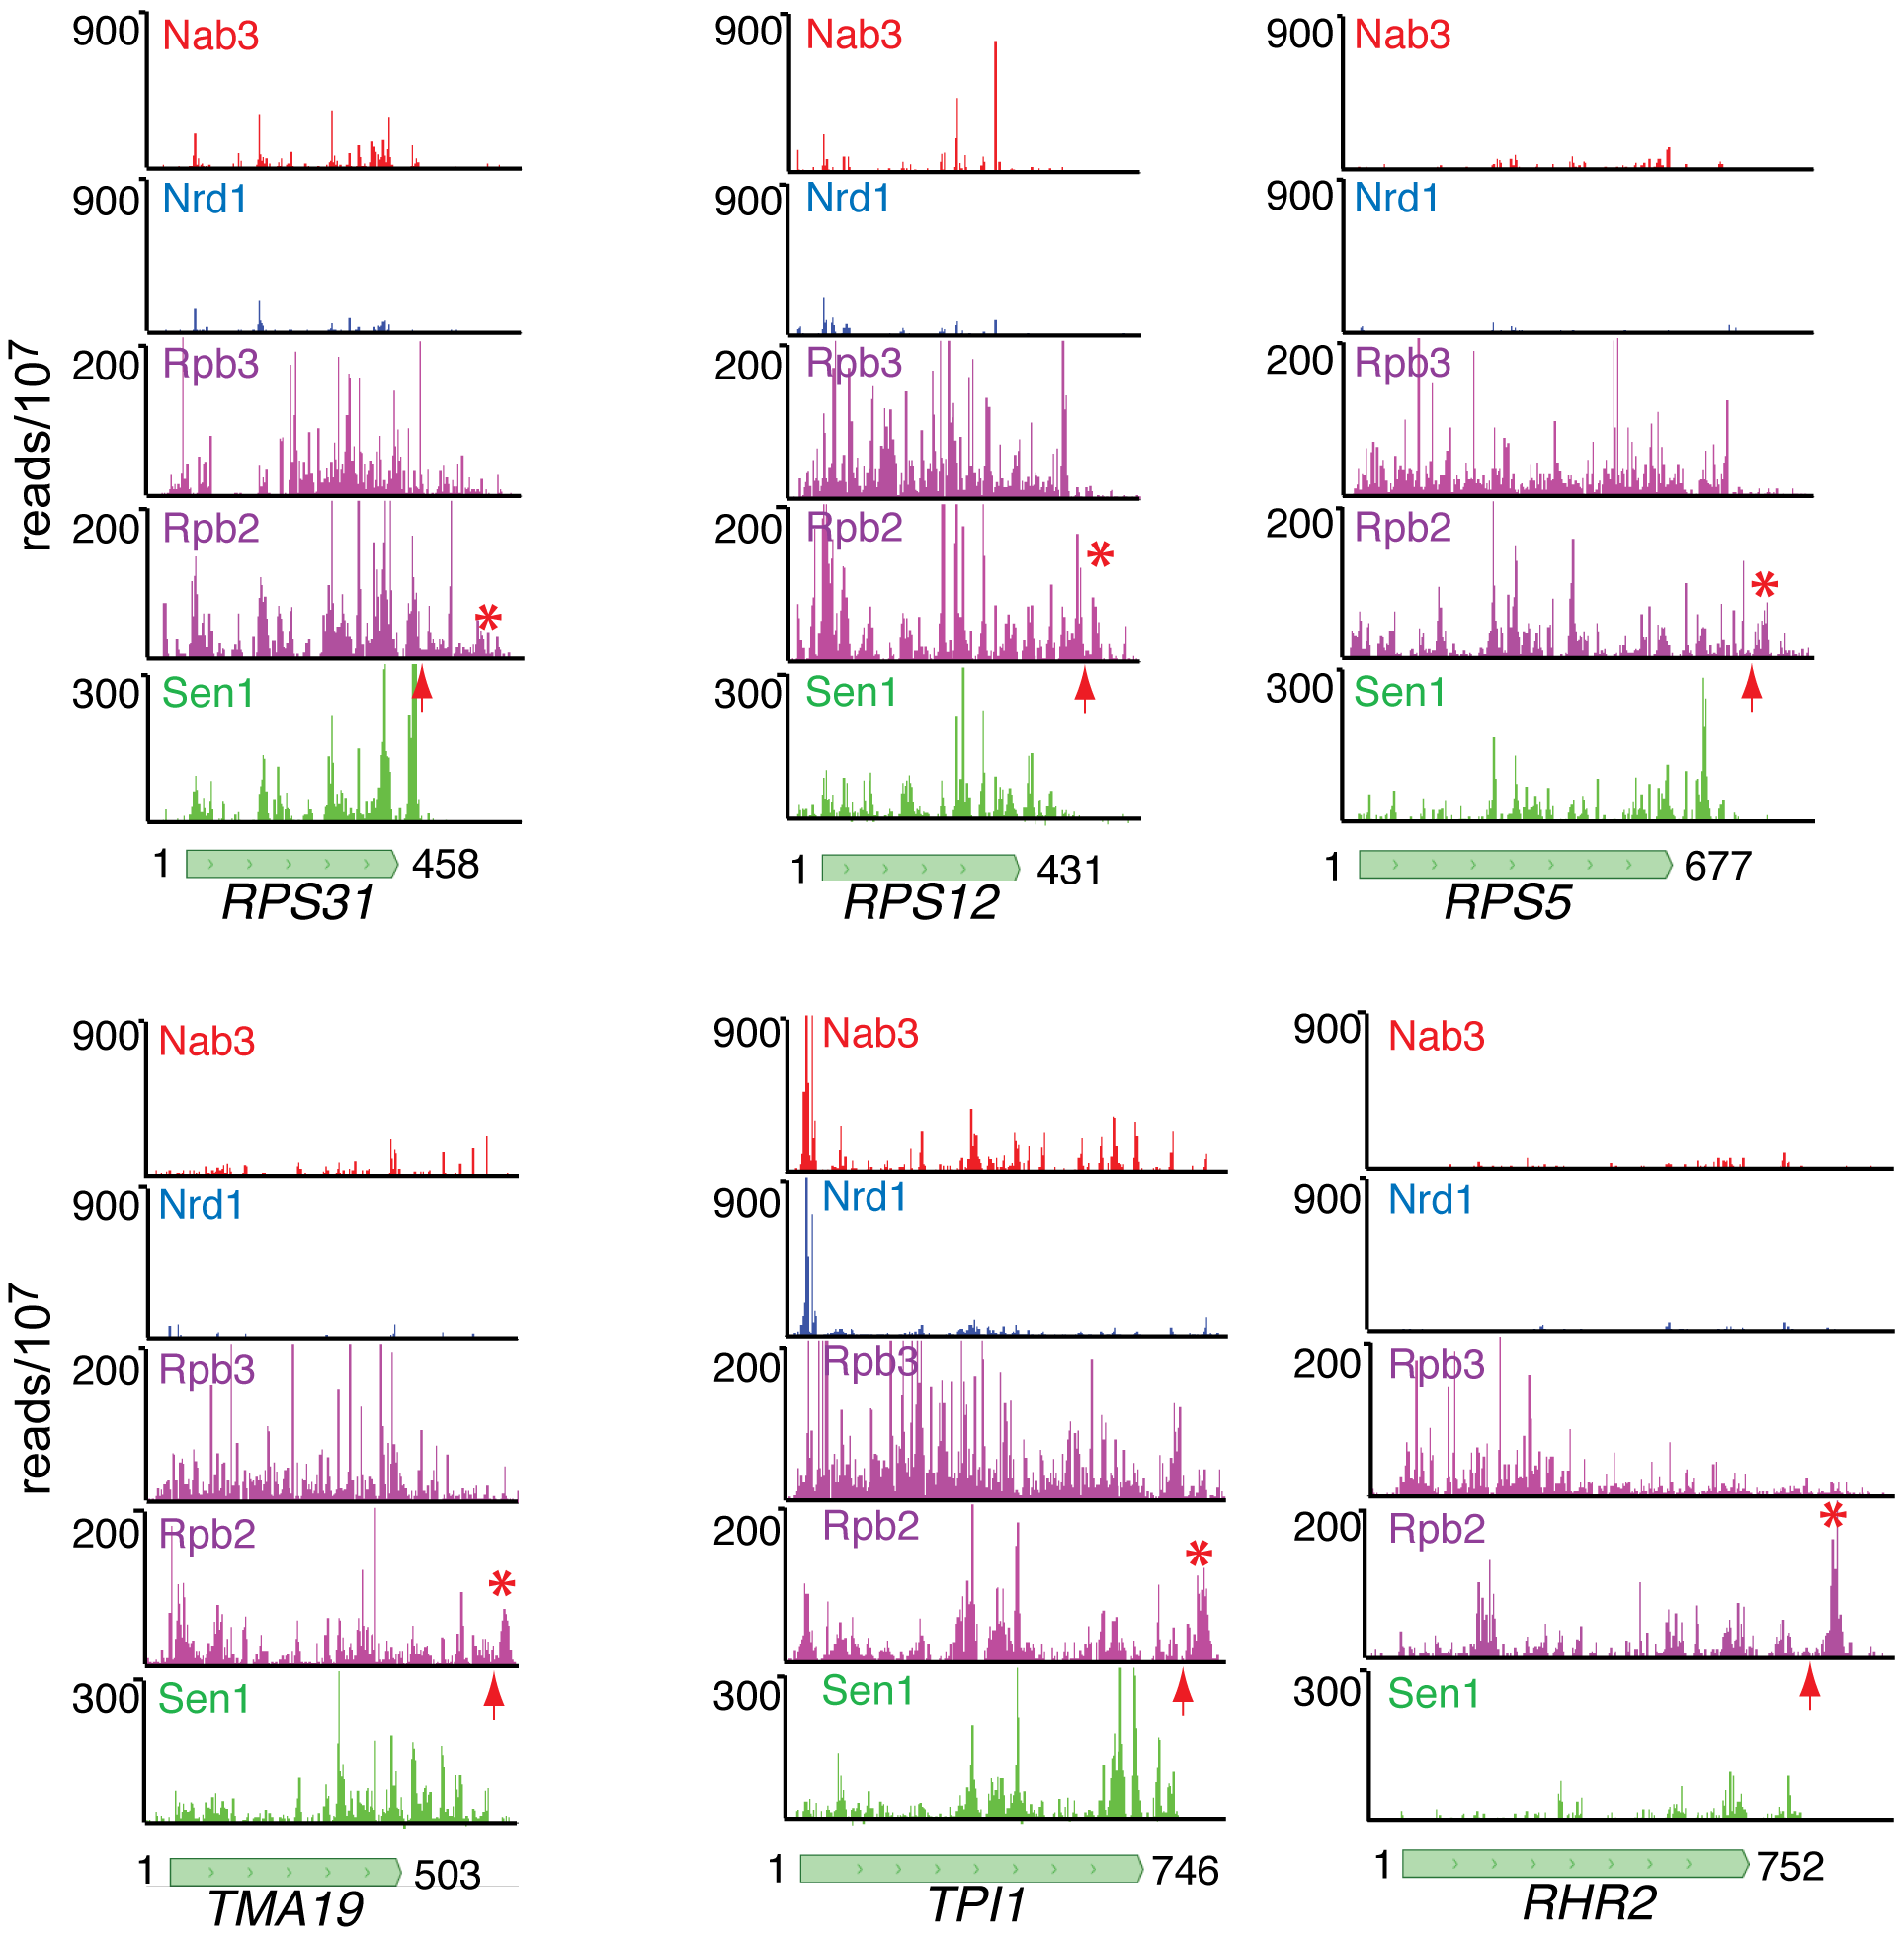 Nab3, Nrd1, Rpb2, Rpb3, and Sen1 reads distributed on a variety of genes.